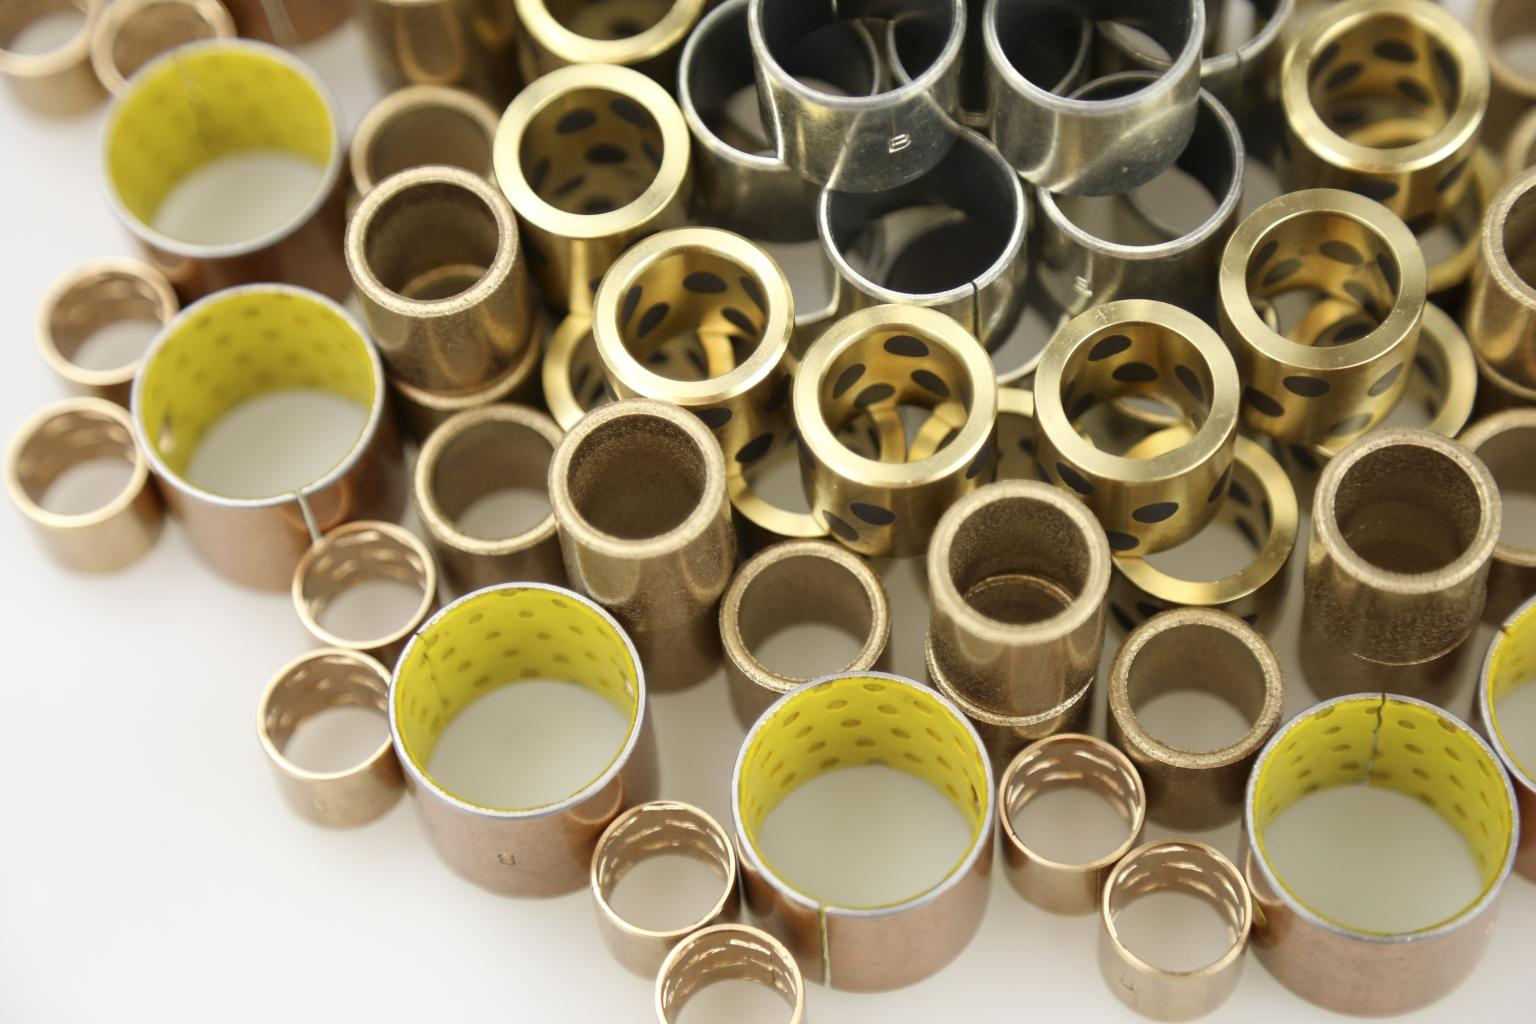 Bearing manufacturers' latest offerings showcase the results of concentrated efforts in R&D